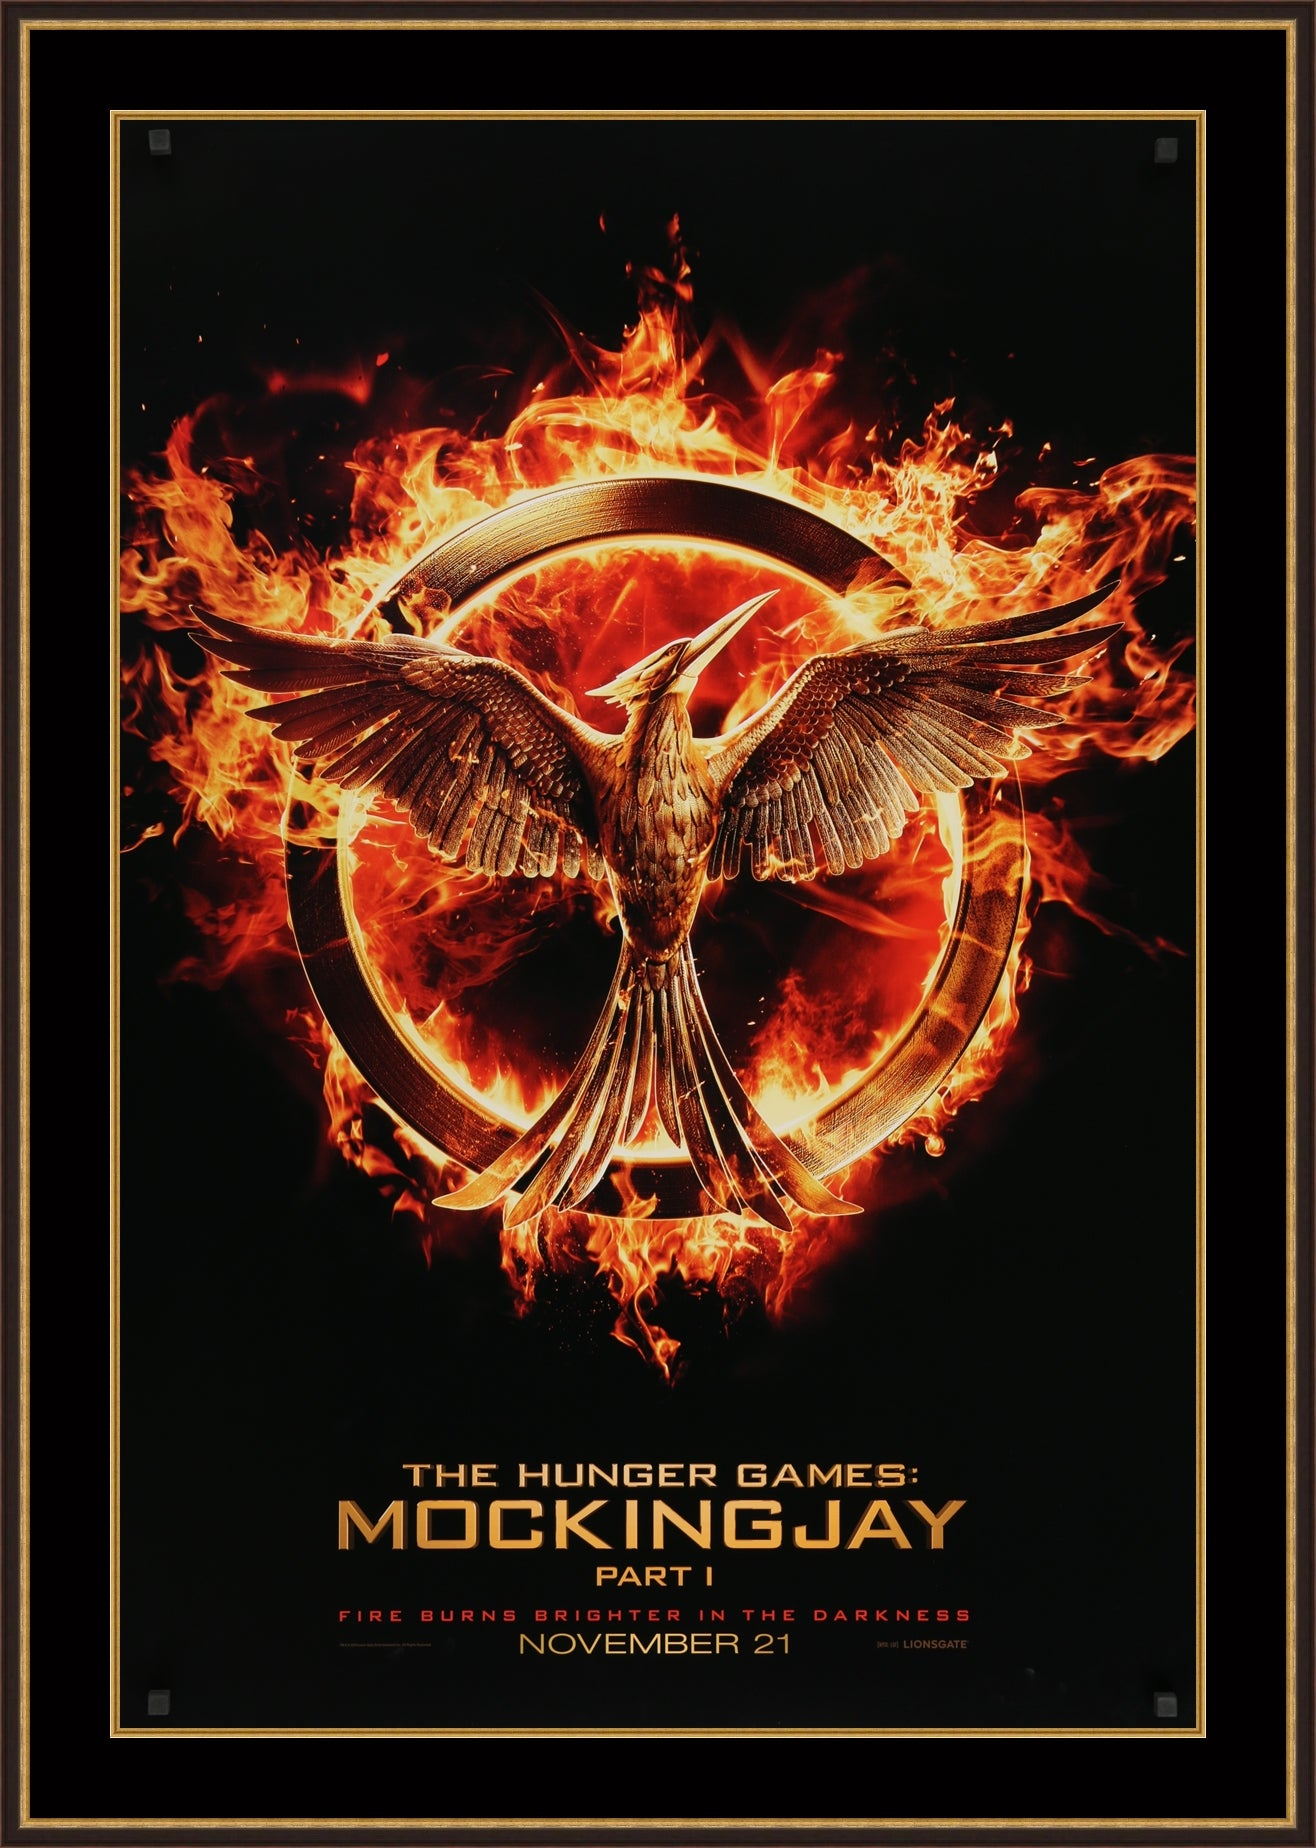 An original movie poster for The Hunger Games: Mockingjay Part 1